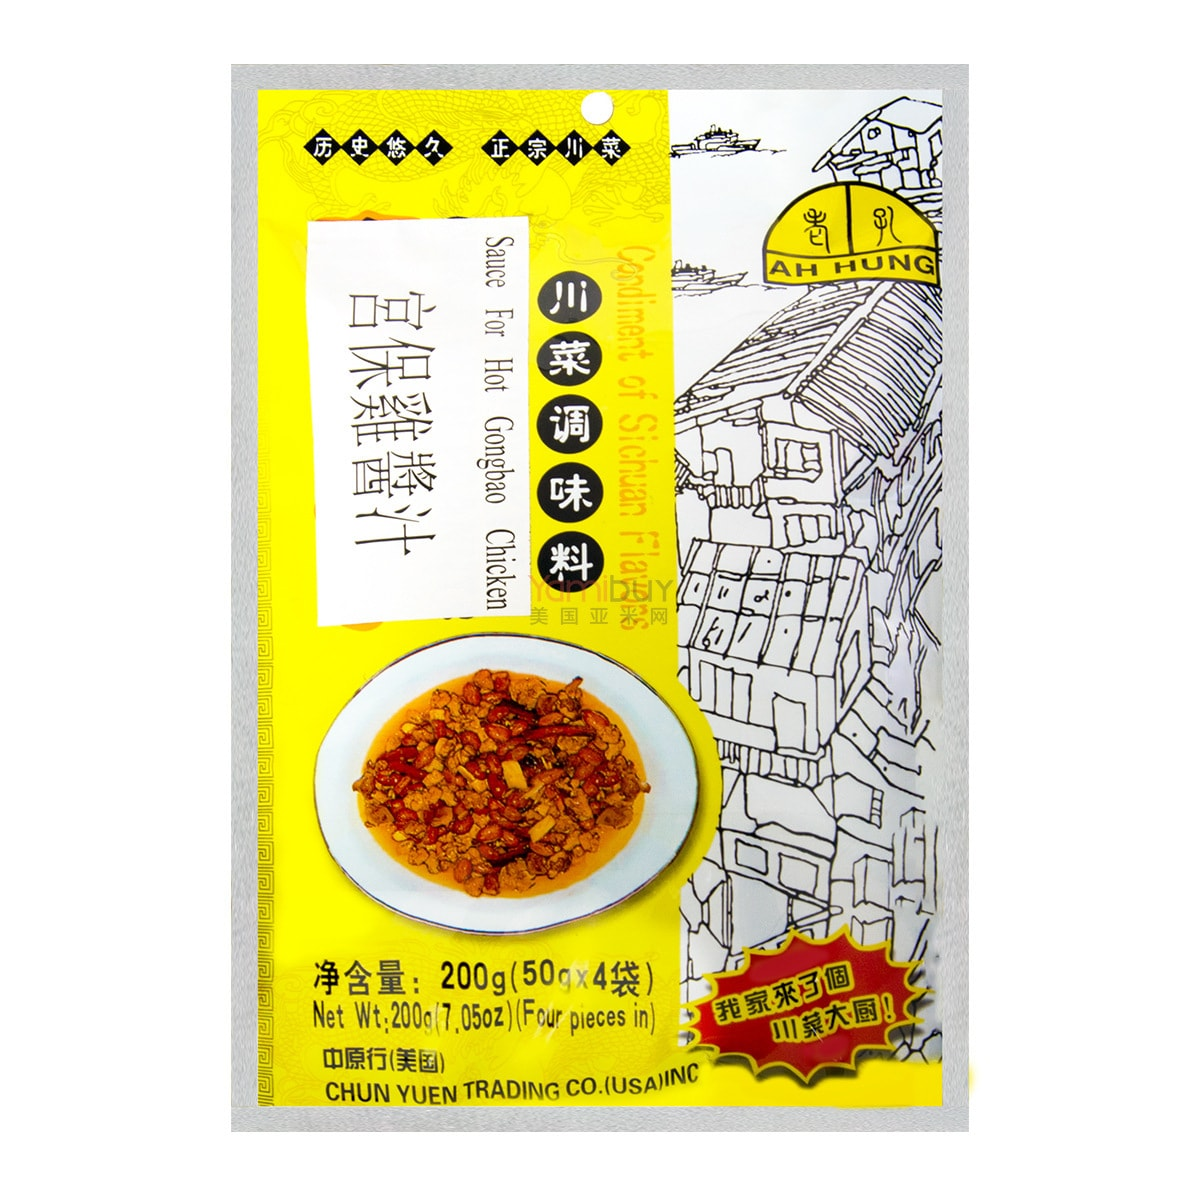 AH HUNG Fried Chicken Curbs with Peanuts 200g